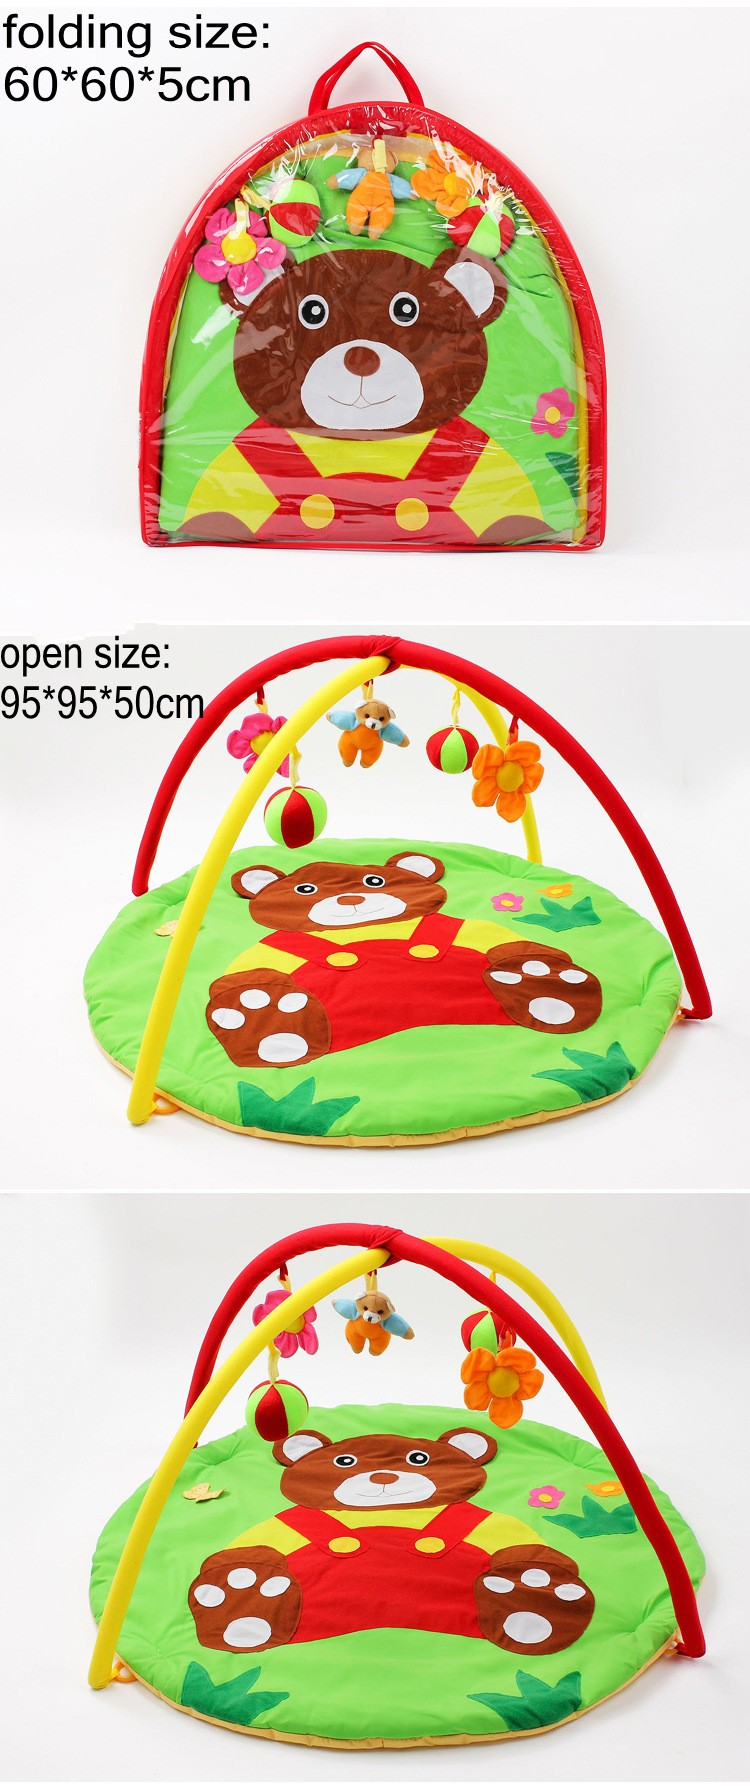 Fun Bear Baby Toy Baby Kids Play Mats 0-1 Year Indoor Baby Sports Soft Crawling Pad Musical Activity Gym Play Blanket 1